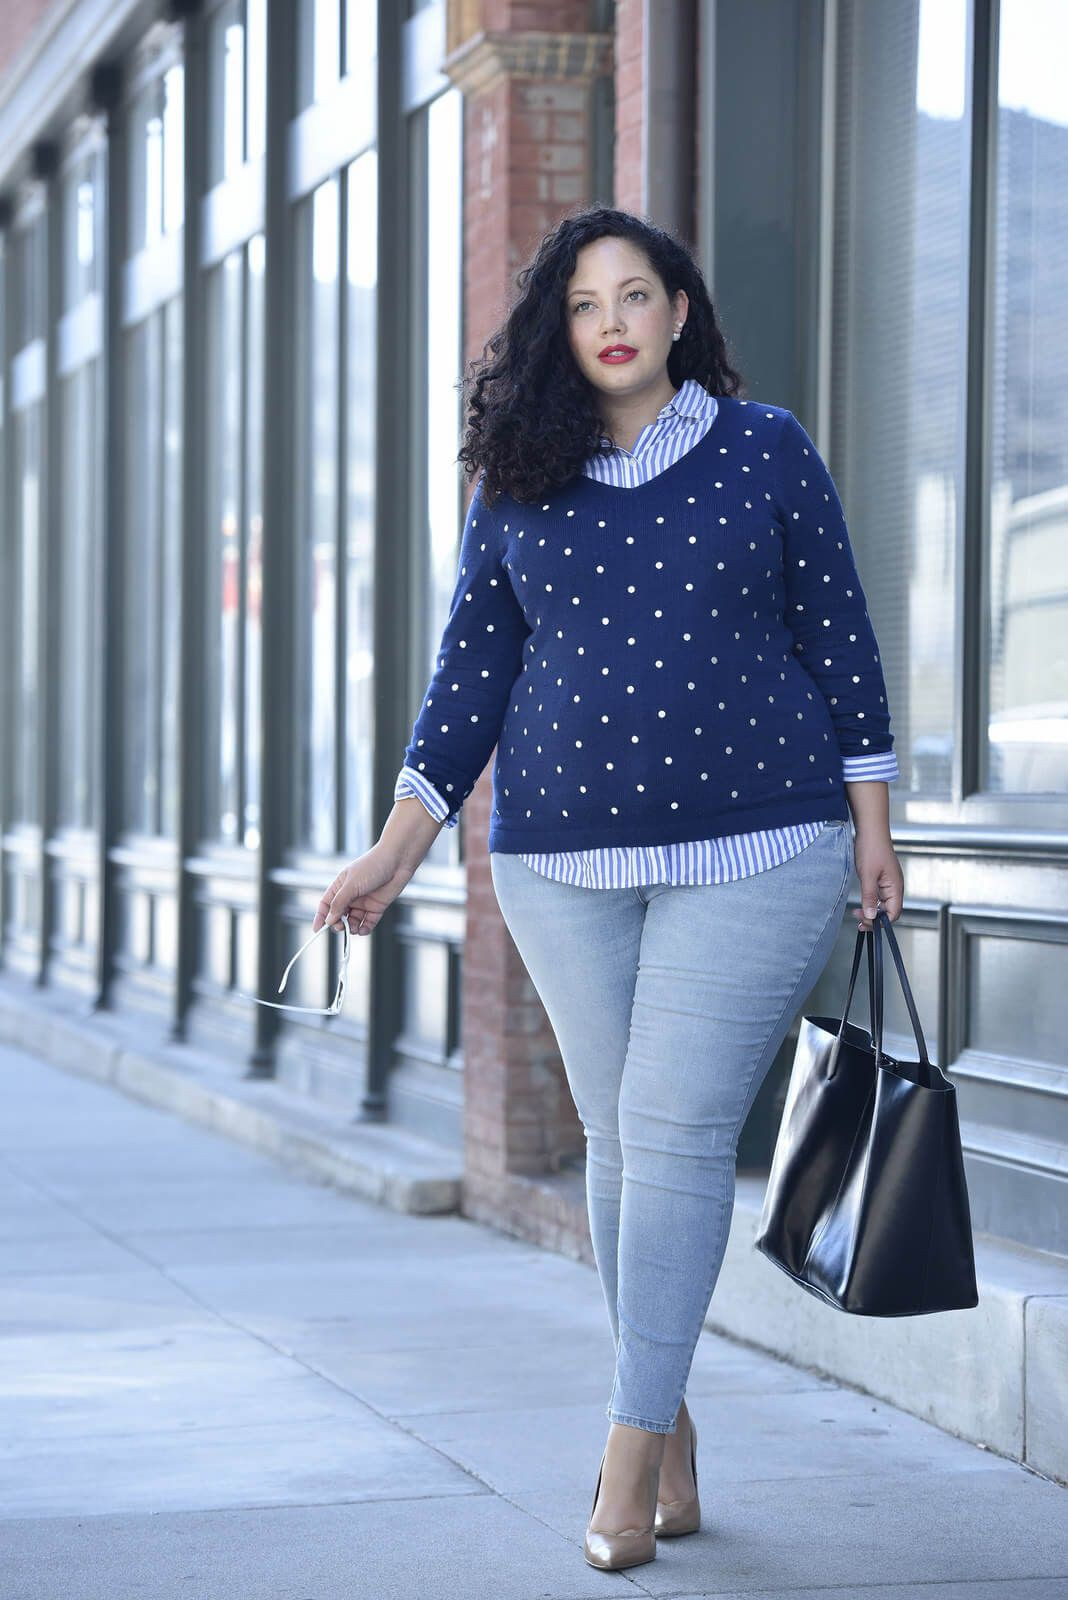 Plus Size Workwear Outfits, Polka dot, Photo shoot